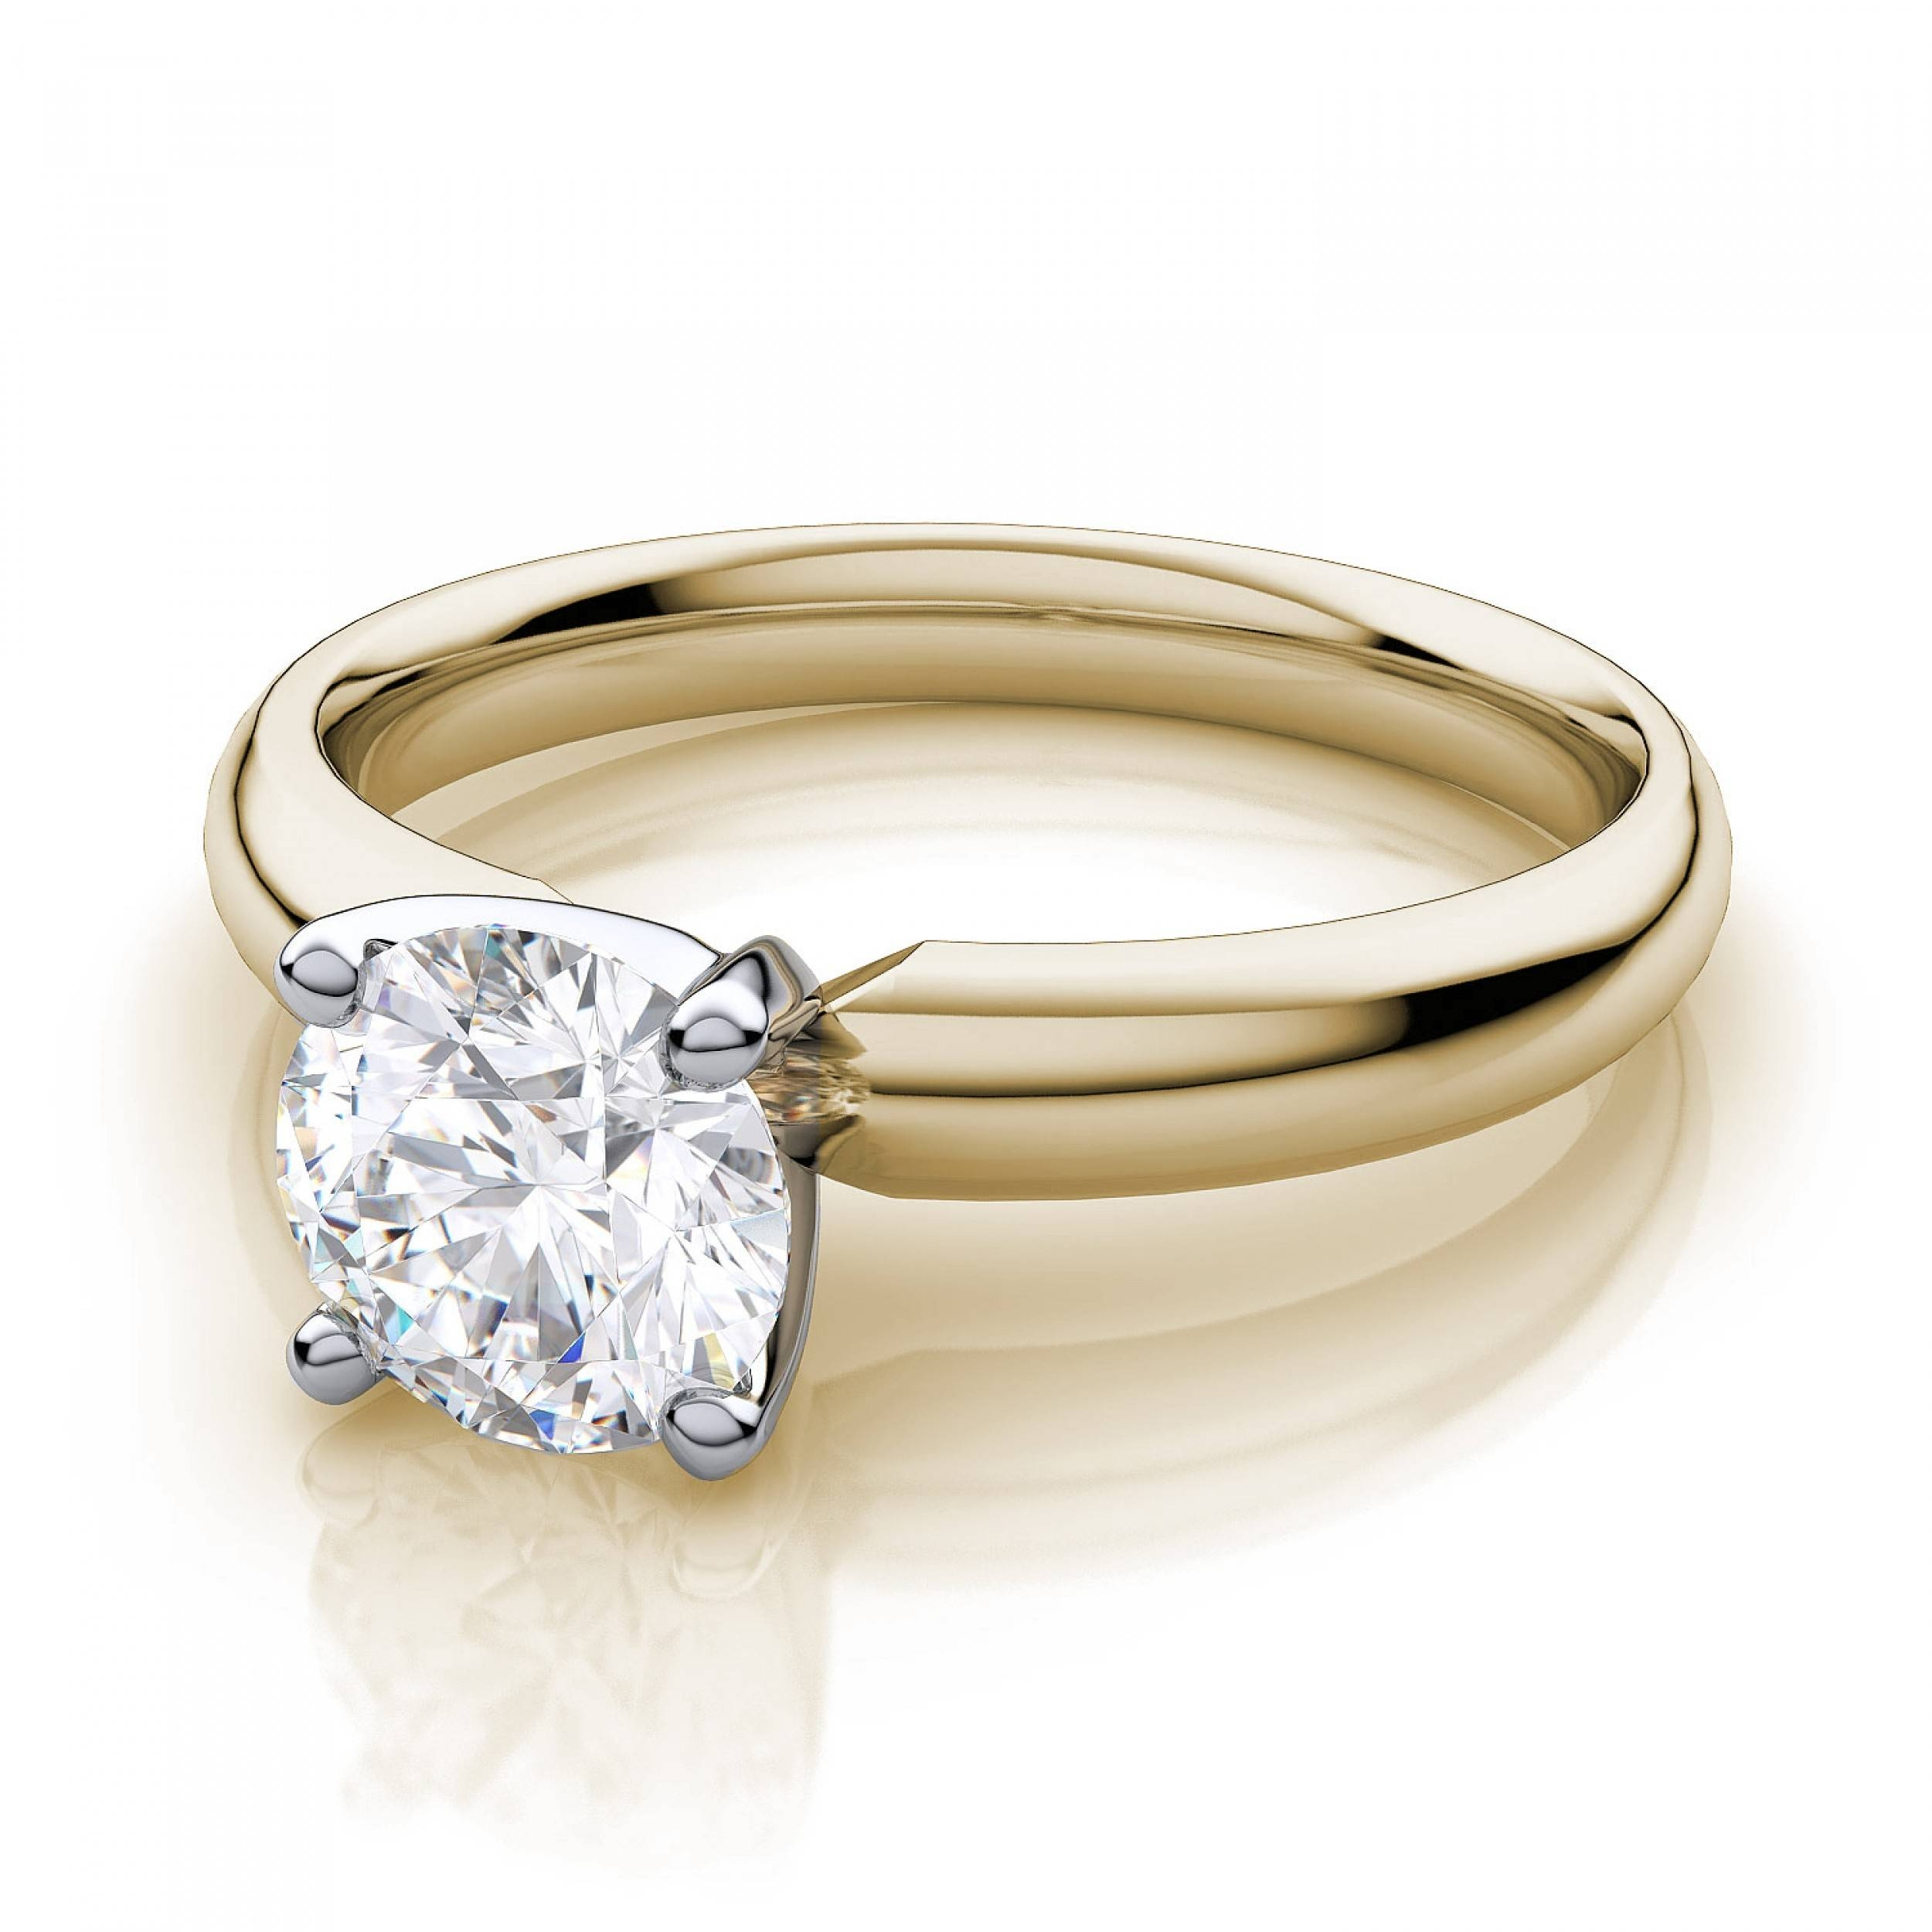 Classic Round Diamond Solitaire Engagement Ring In 18K Yellow Gold With Traditional Gold Engagement Rings (View 7 of 15)